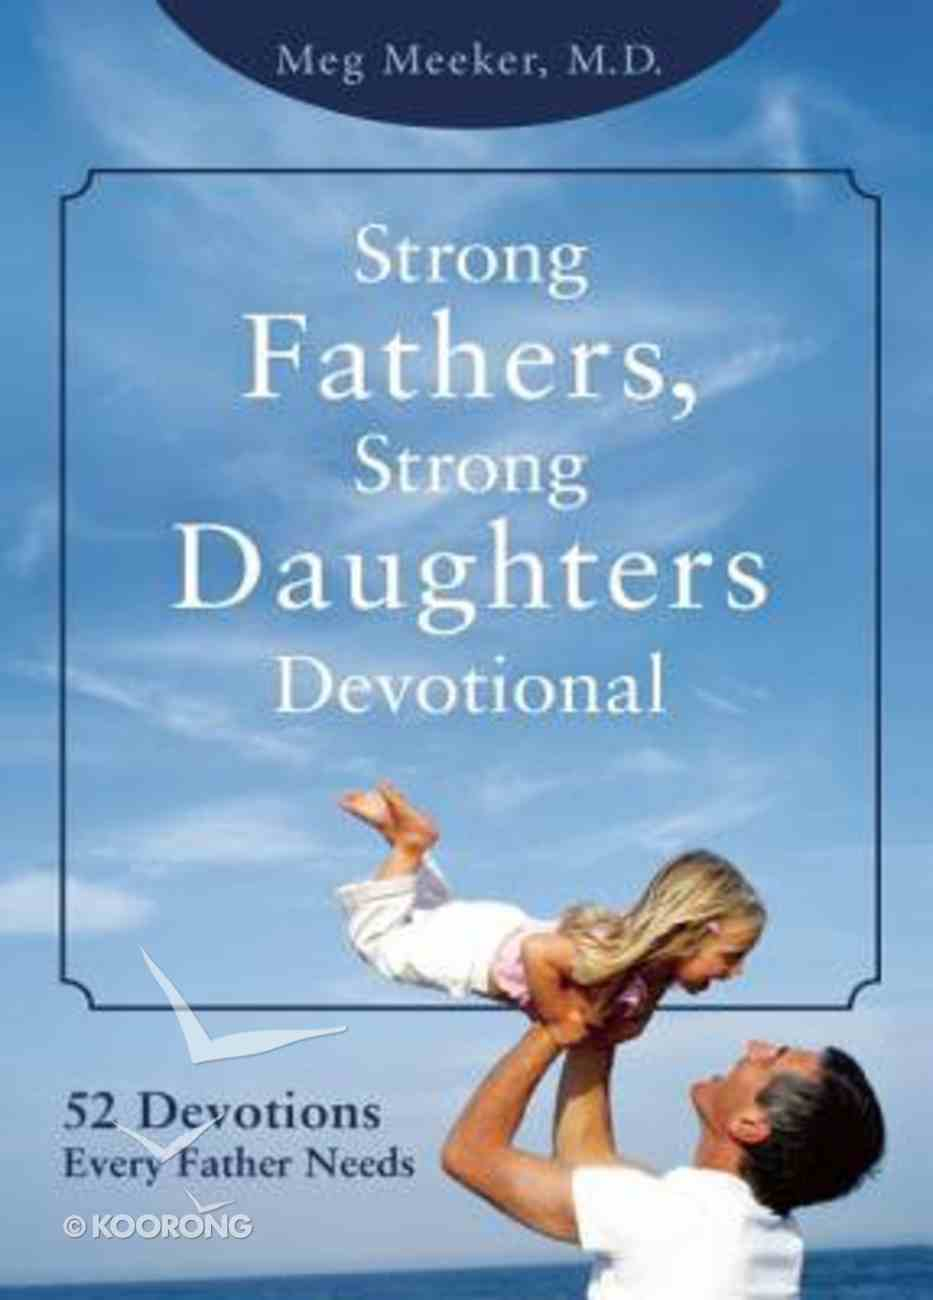 Strong Fathers, Strong Daughters Devotional: 52 Devotions Every Father Needs Hardback